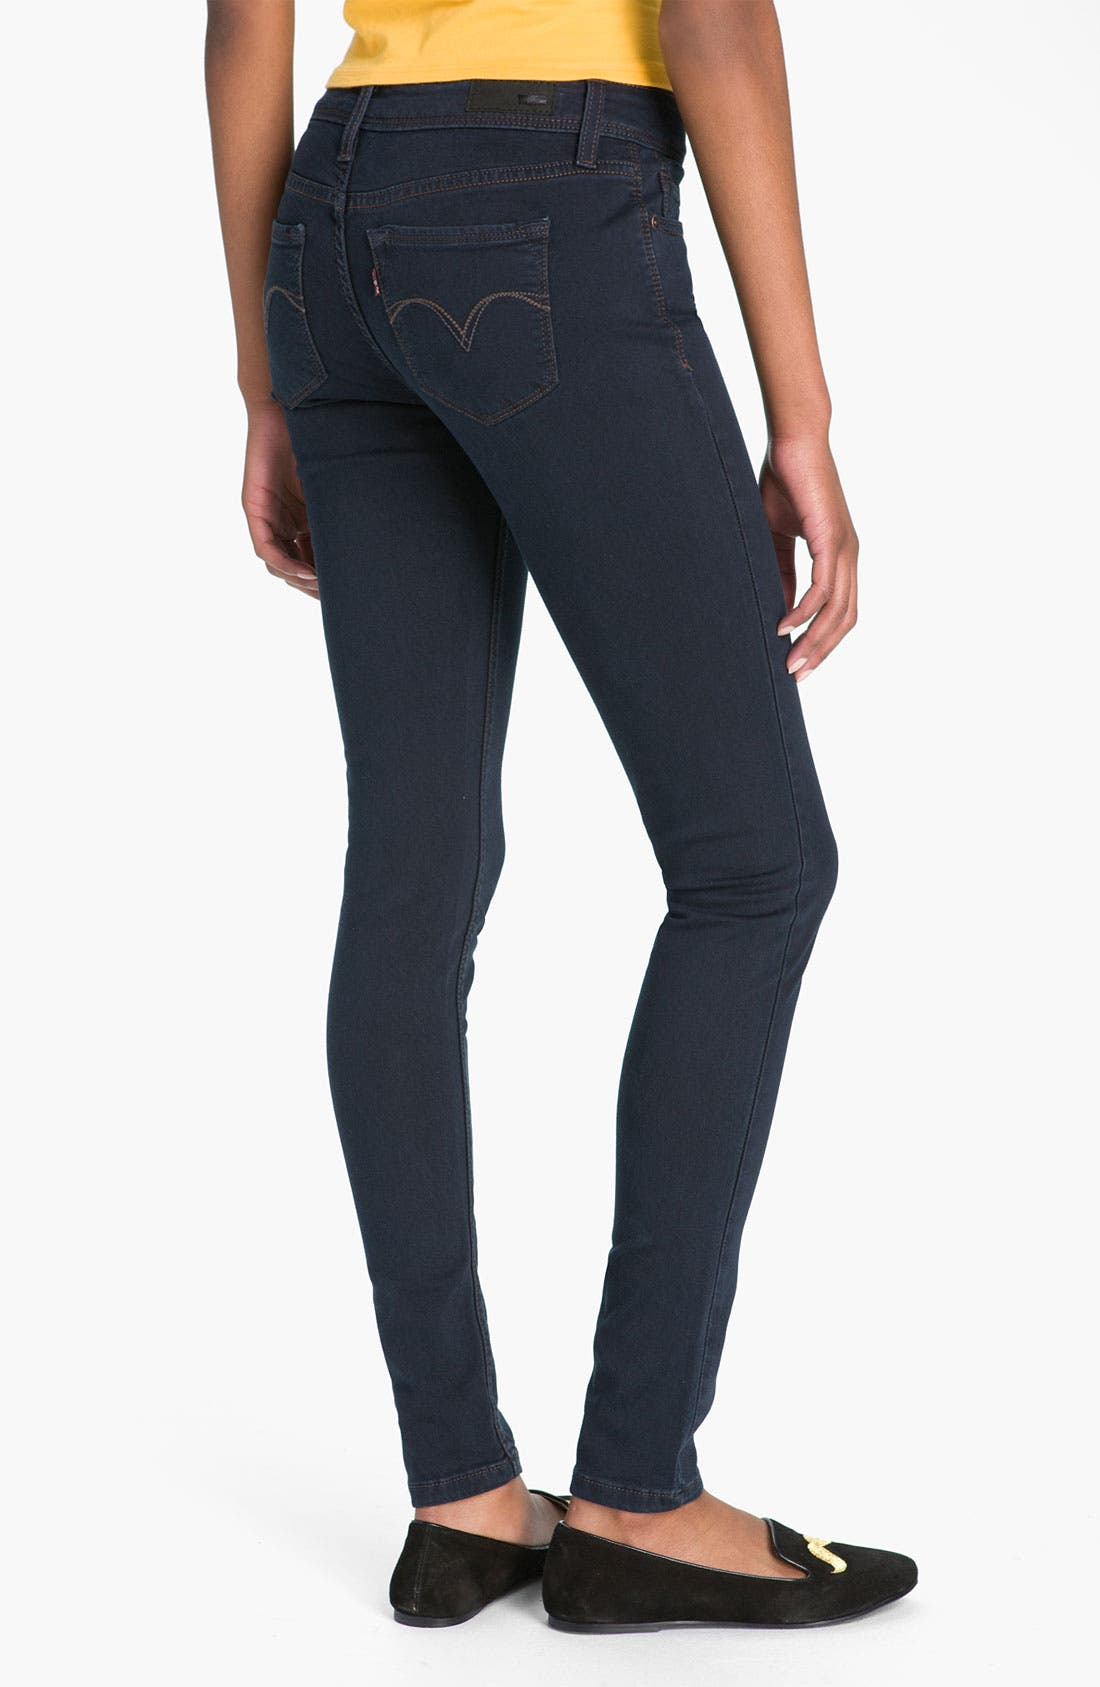 Main Image - Levi's Denim Leggings (Indigo Heart Sateen)